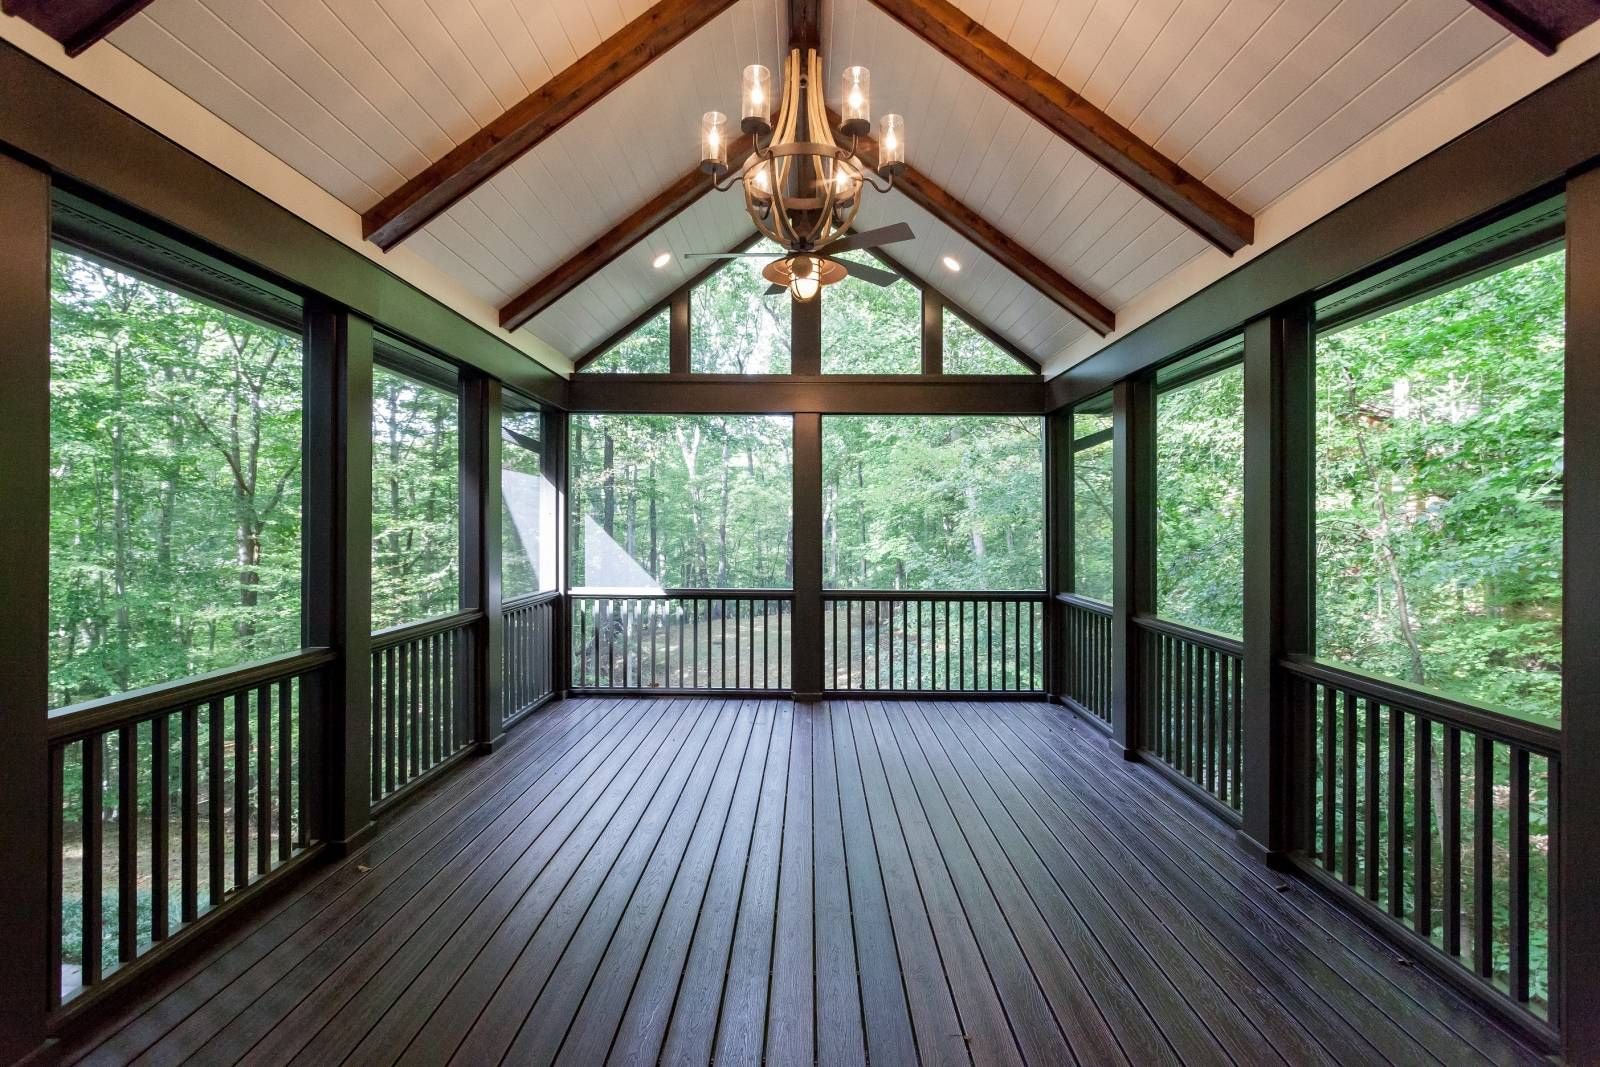 Vaulted Ceiling Screen Porch With White Painted Wood Ceiling And Stained Beams In Custom Tudor Home By Bcn House With Porch Screened Porch Painted Wood Ceiling